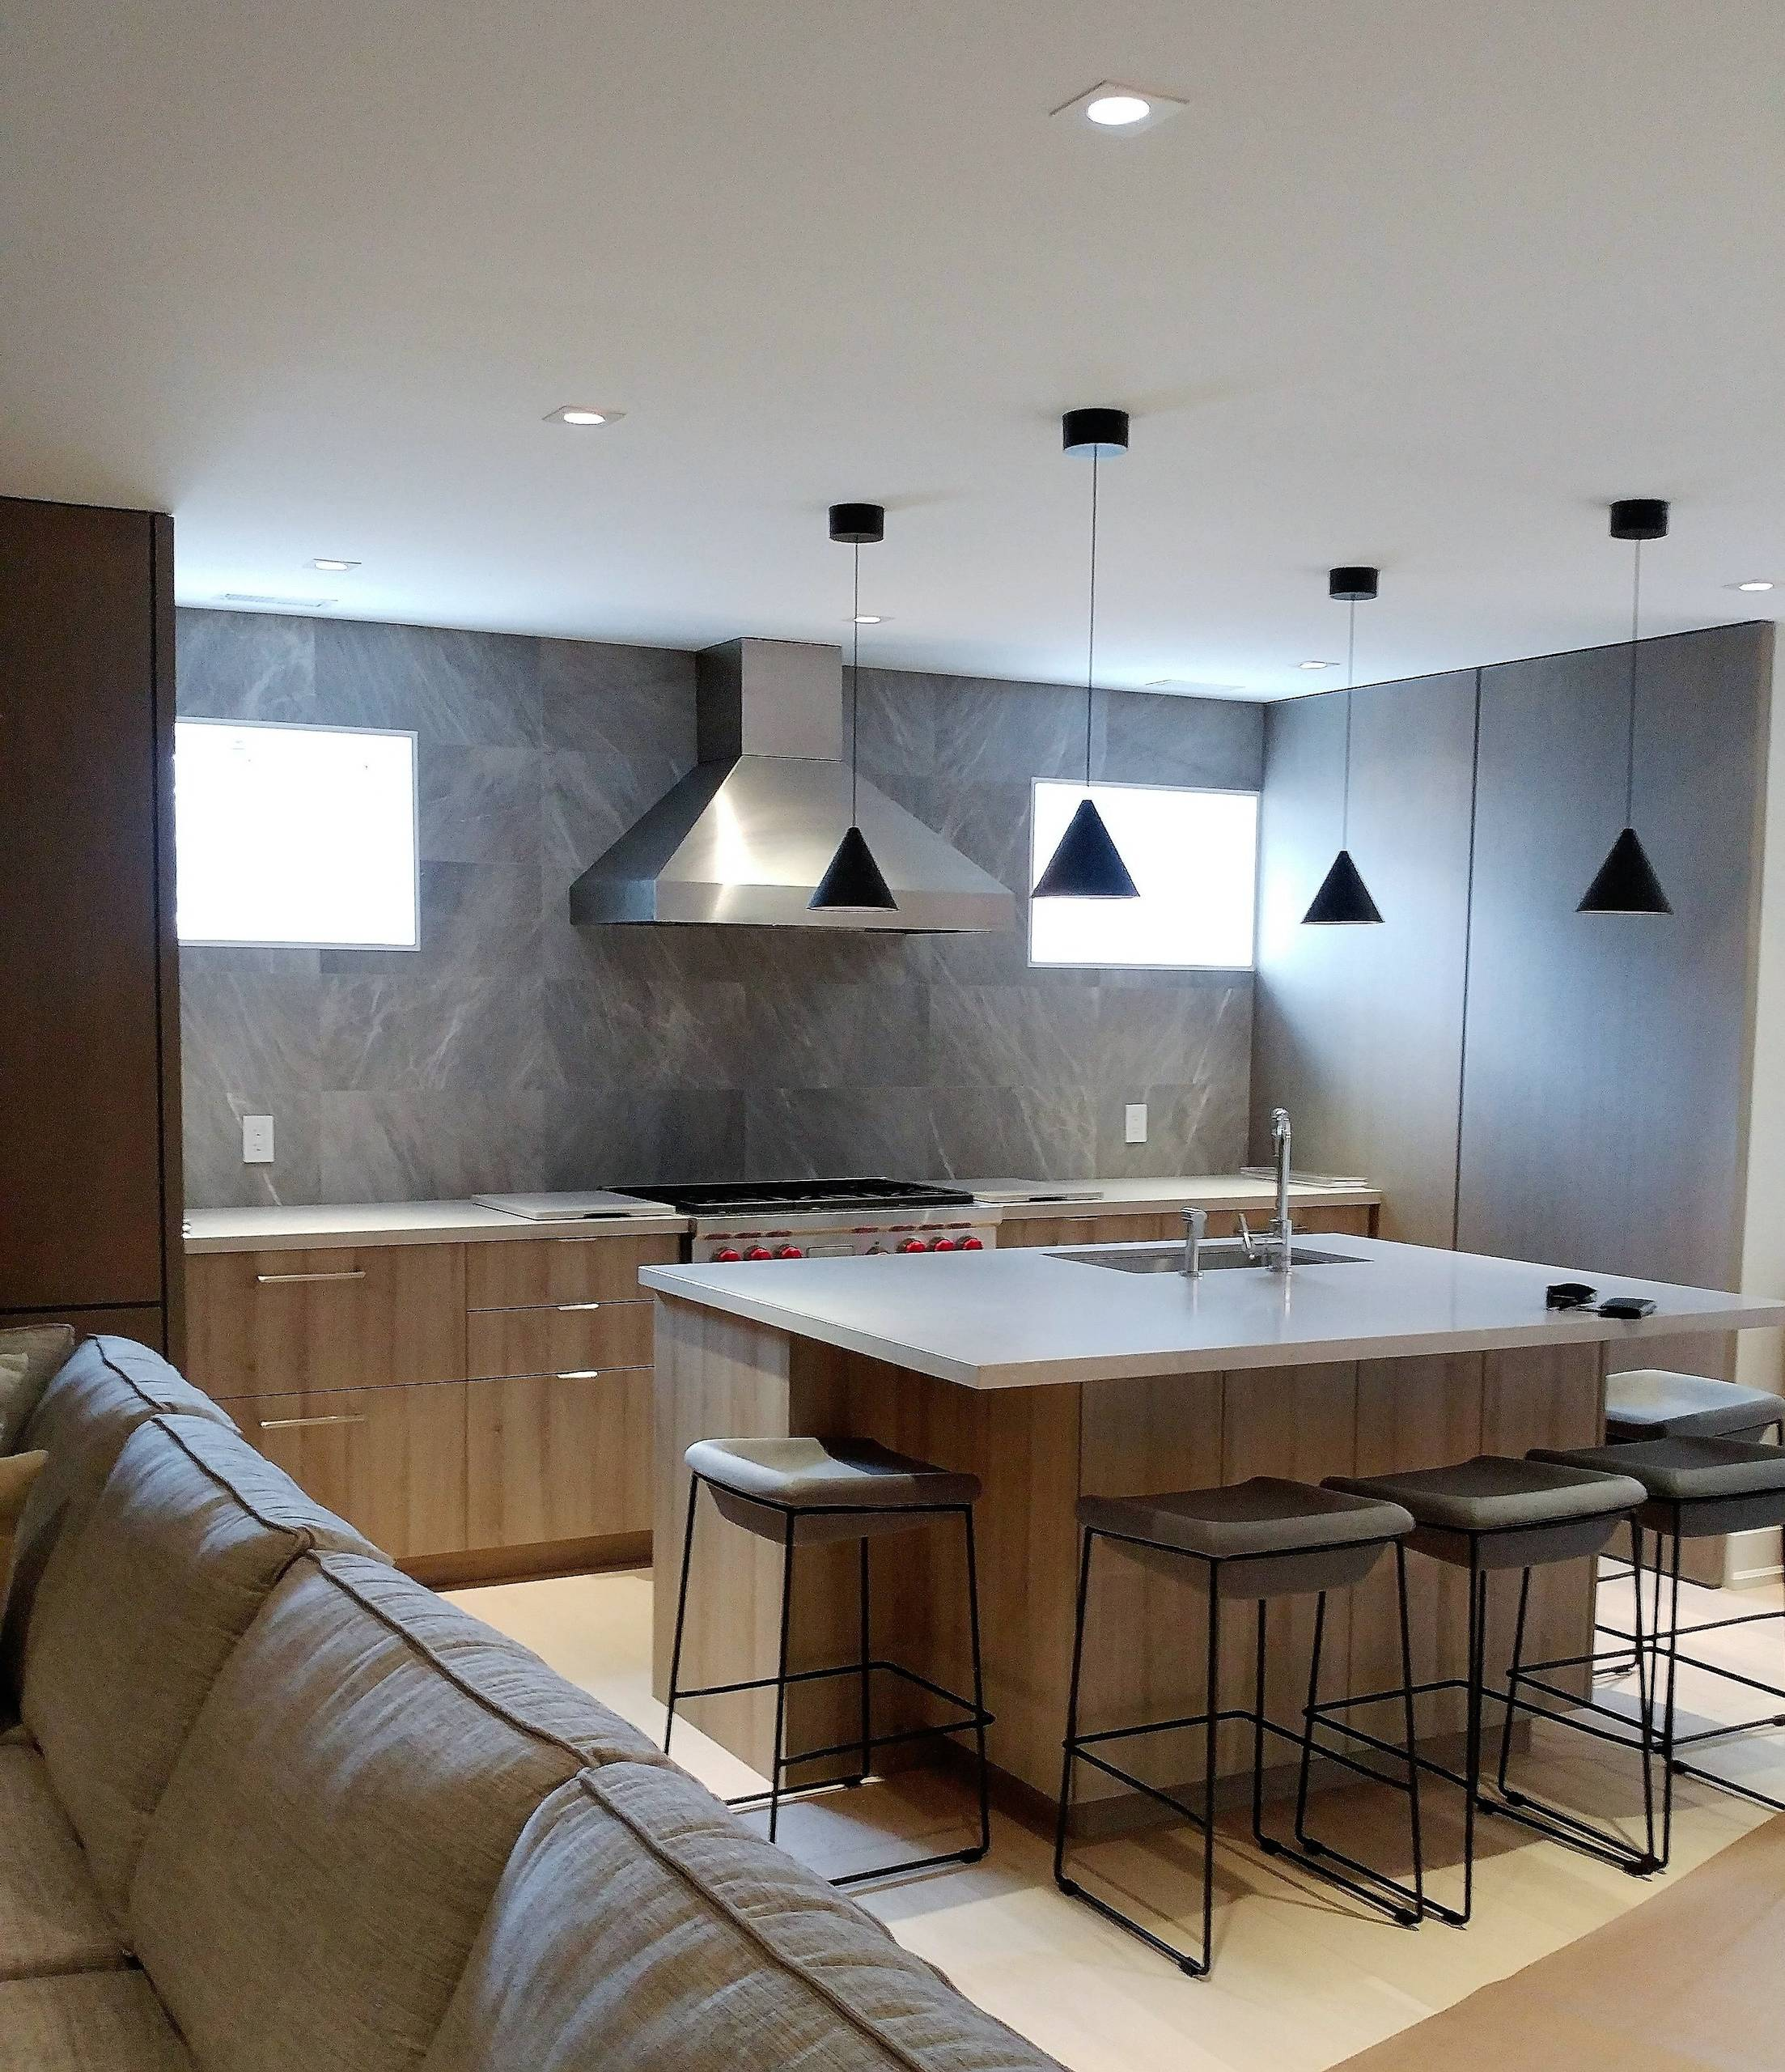 Basement Kitchen and Entertainment Room